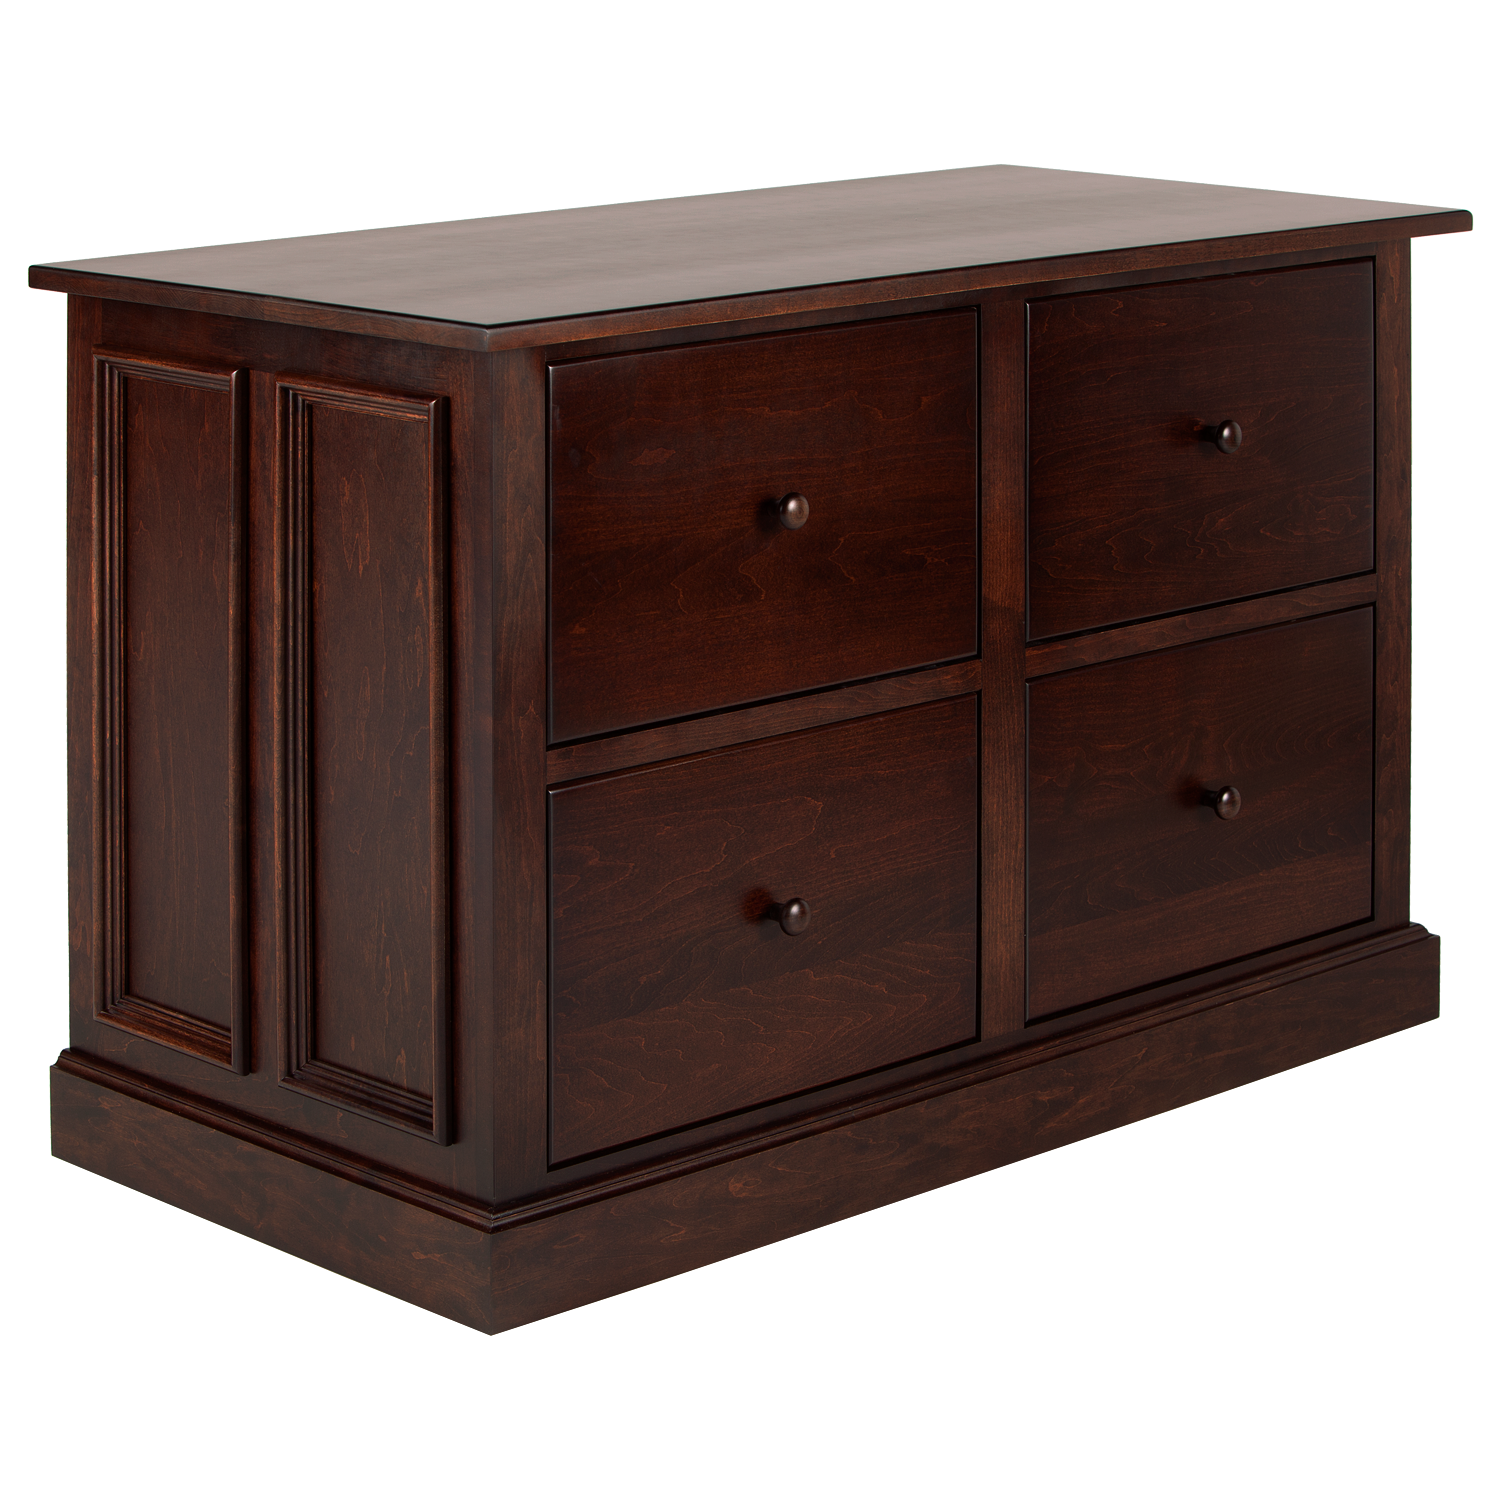 Tuscany 4 Drawer Lateral File Cabinet Hotzon Furniture Inc